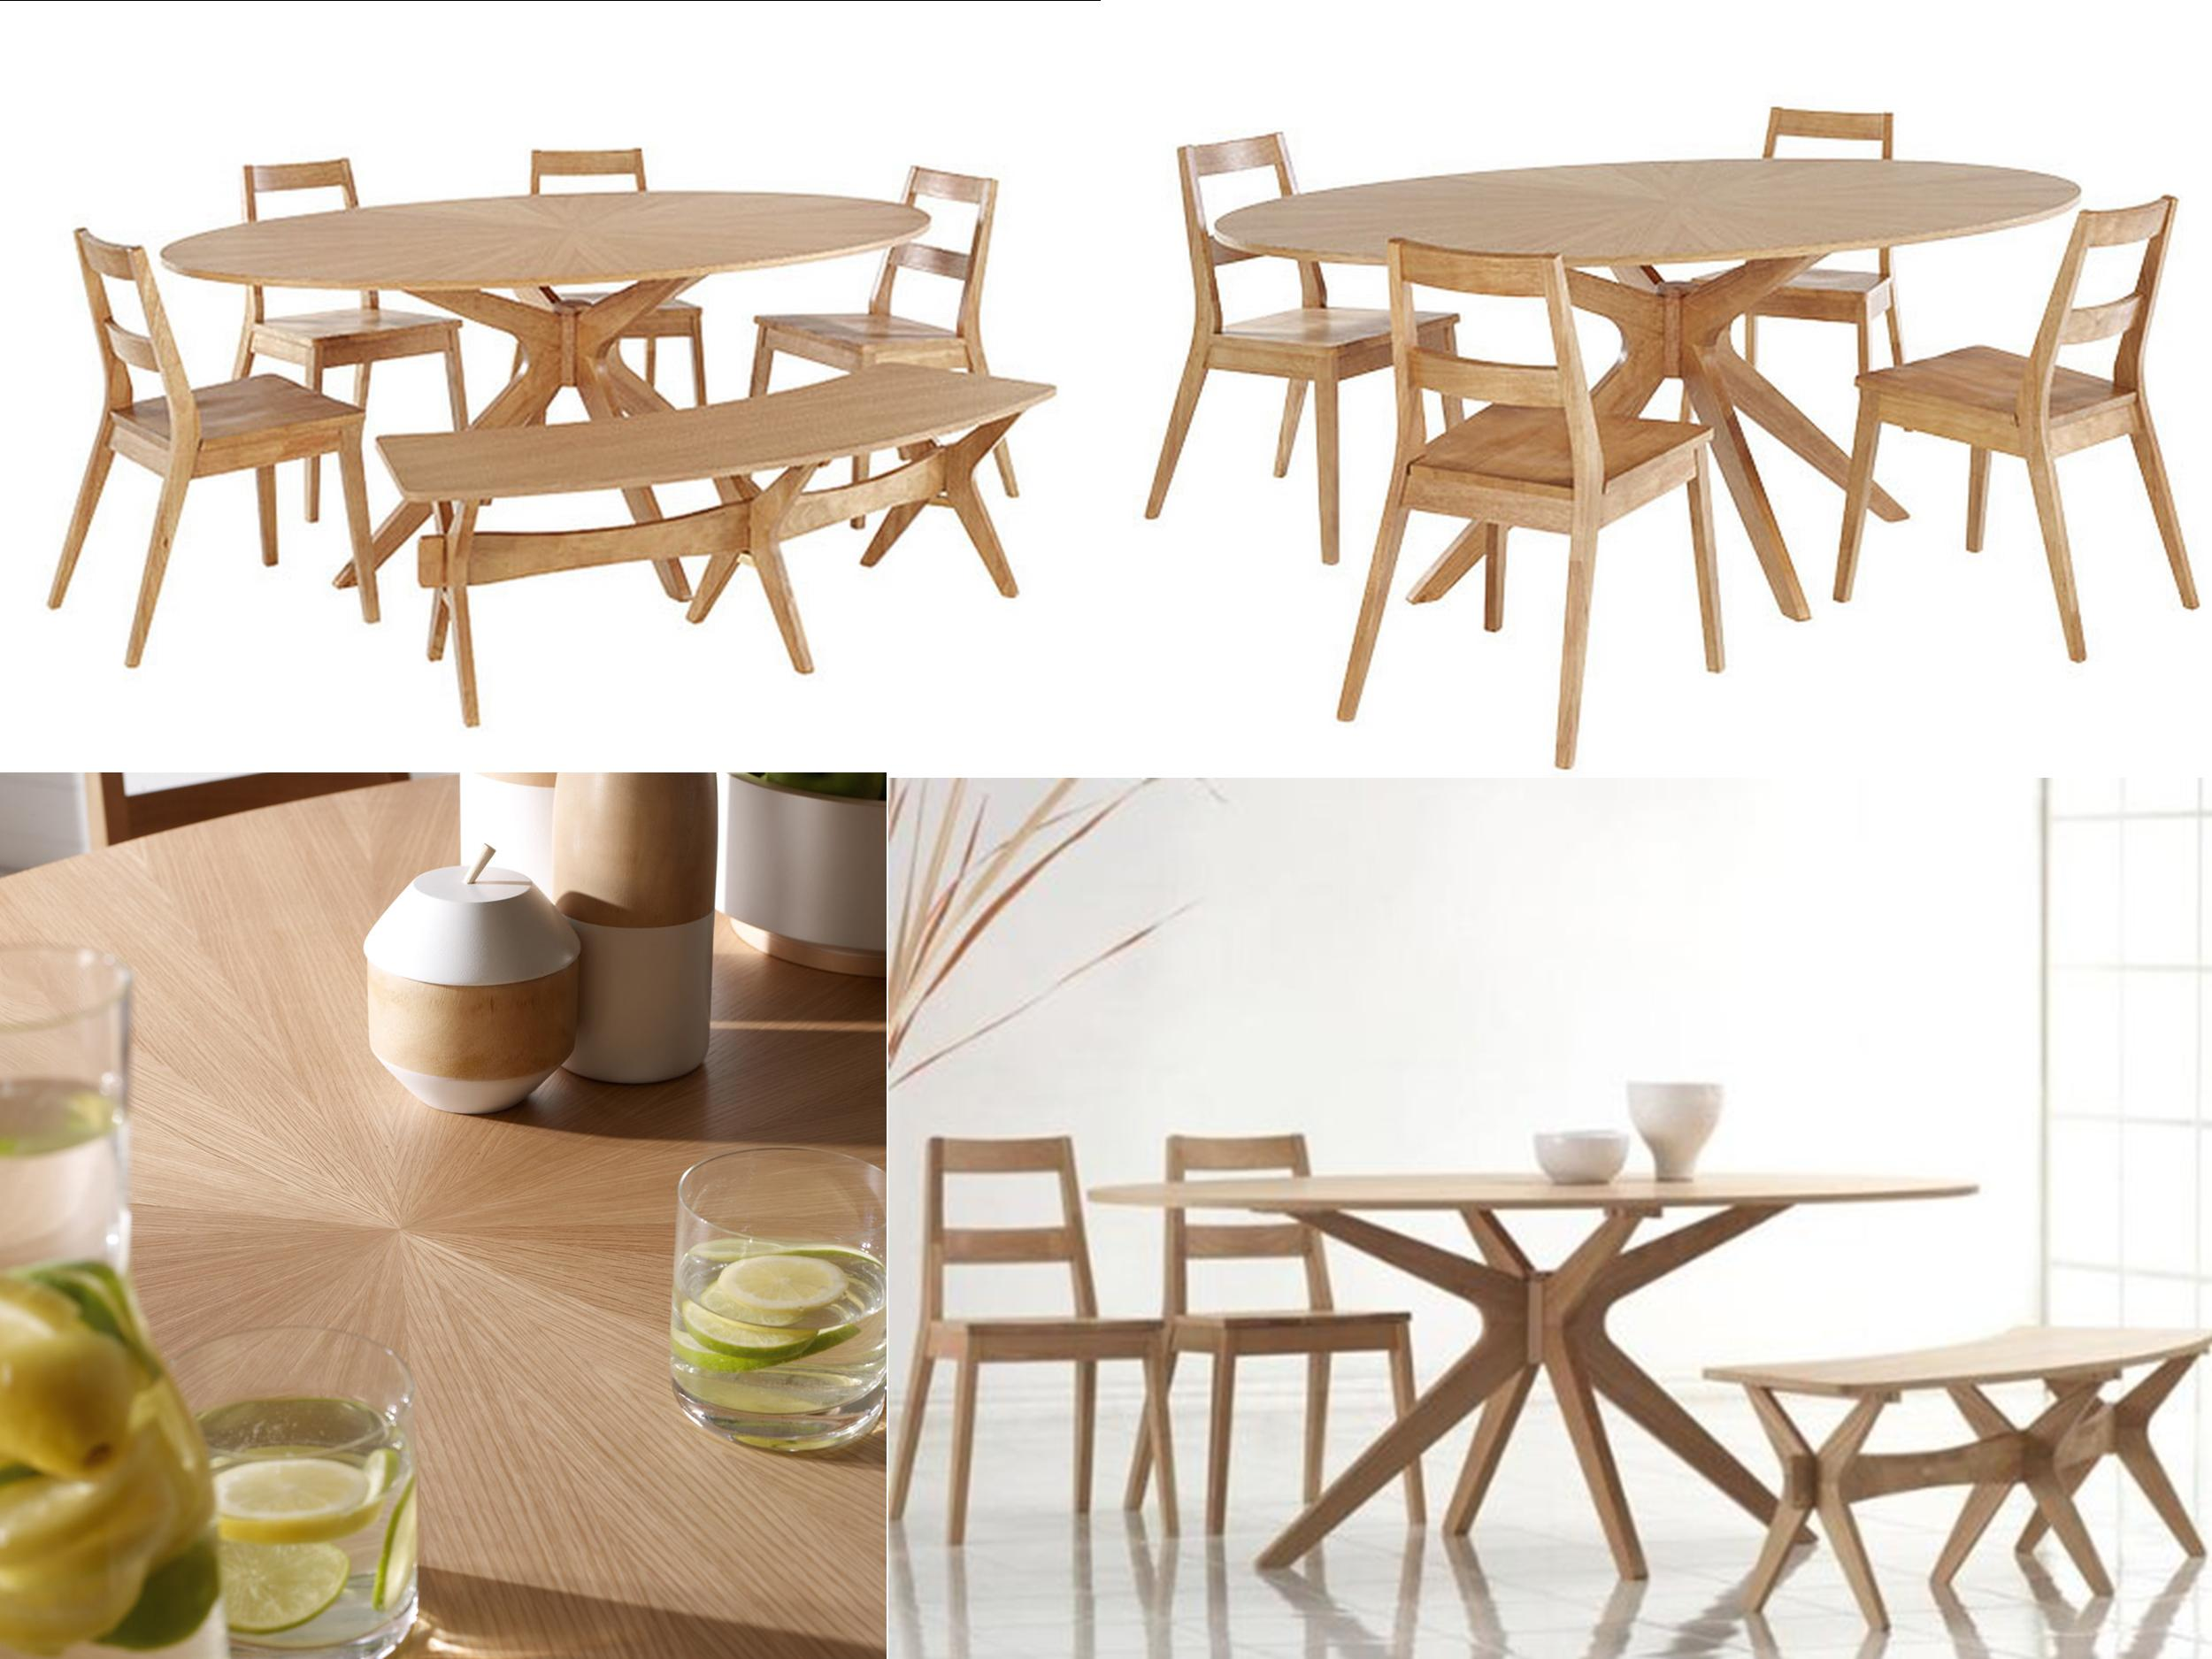 Malmo dining sets oval table chairs bench oak solid wood scandinavian